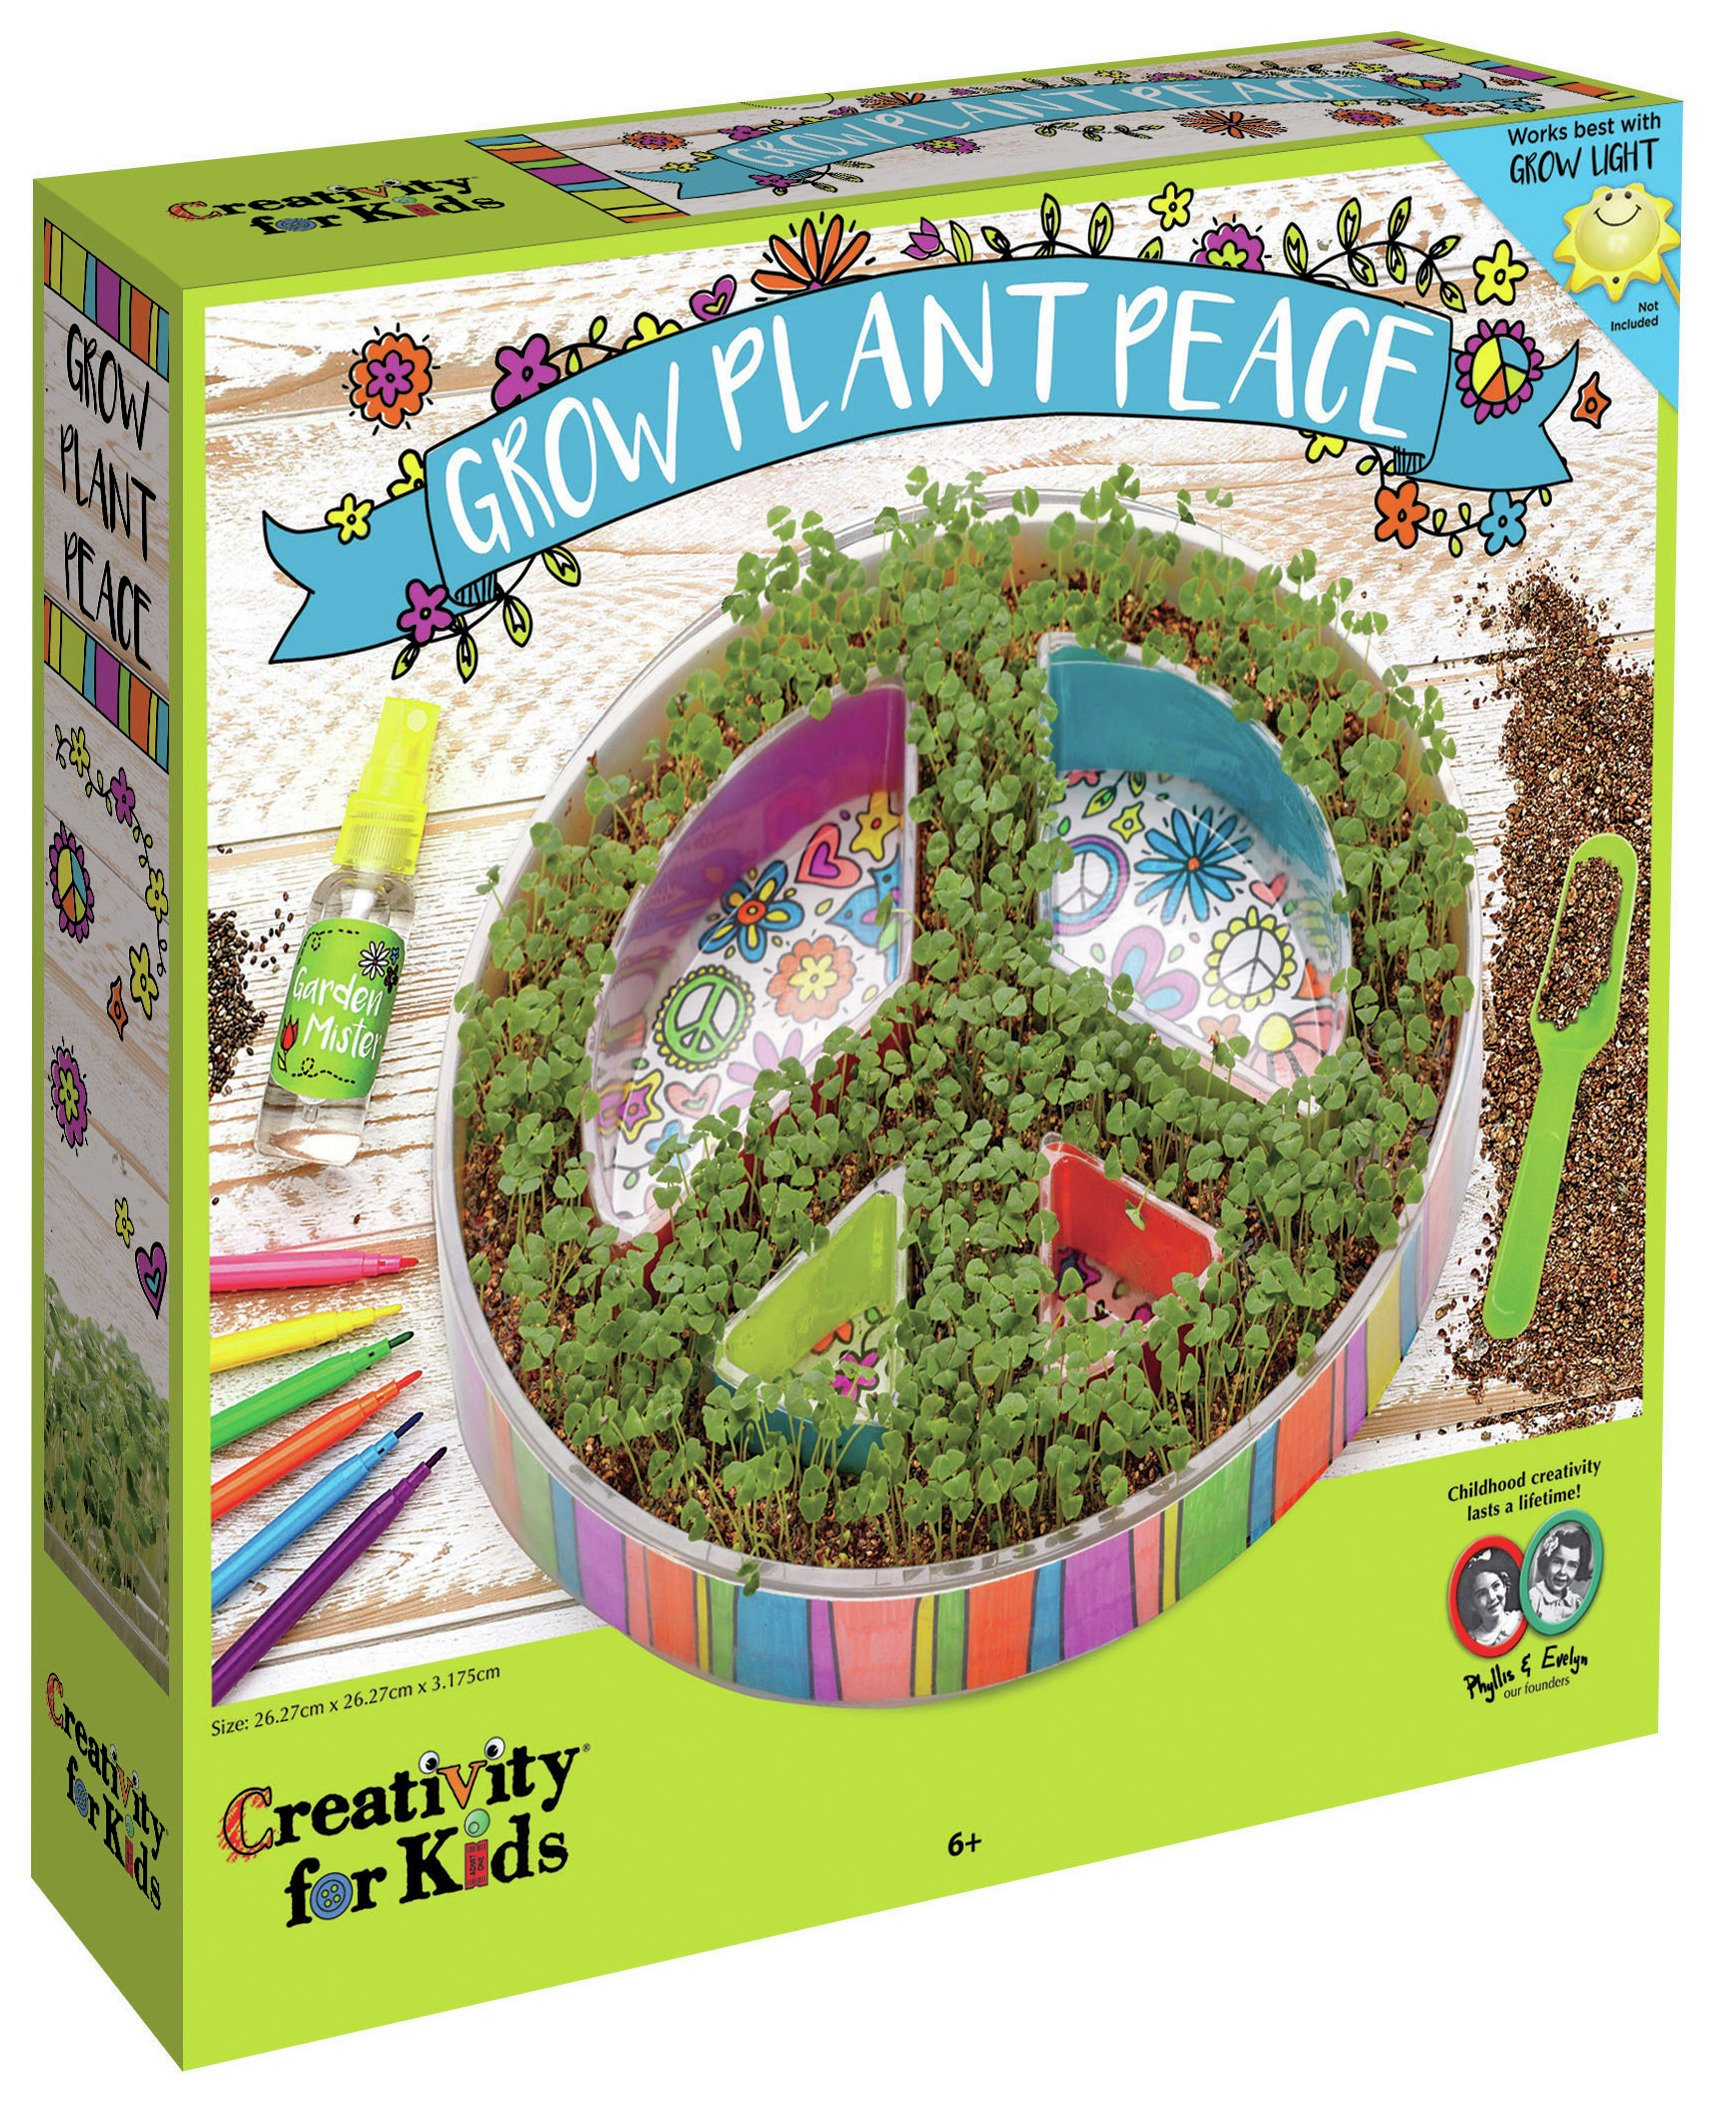 Image of Creativity for Kids GROW Plant a Peace Garden Set.